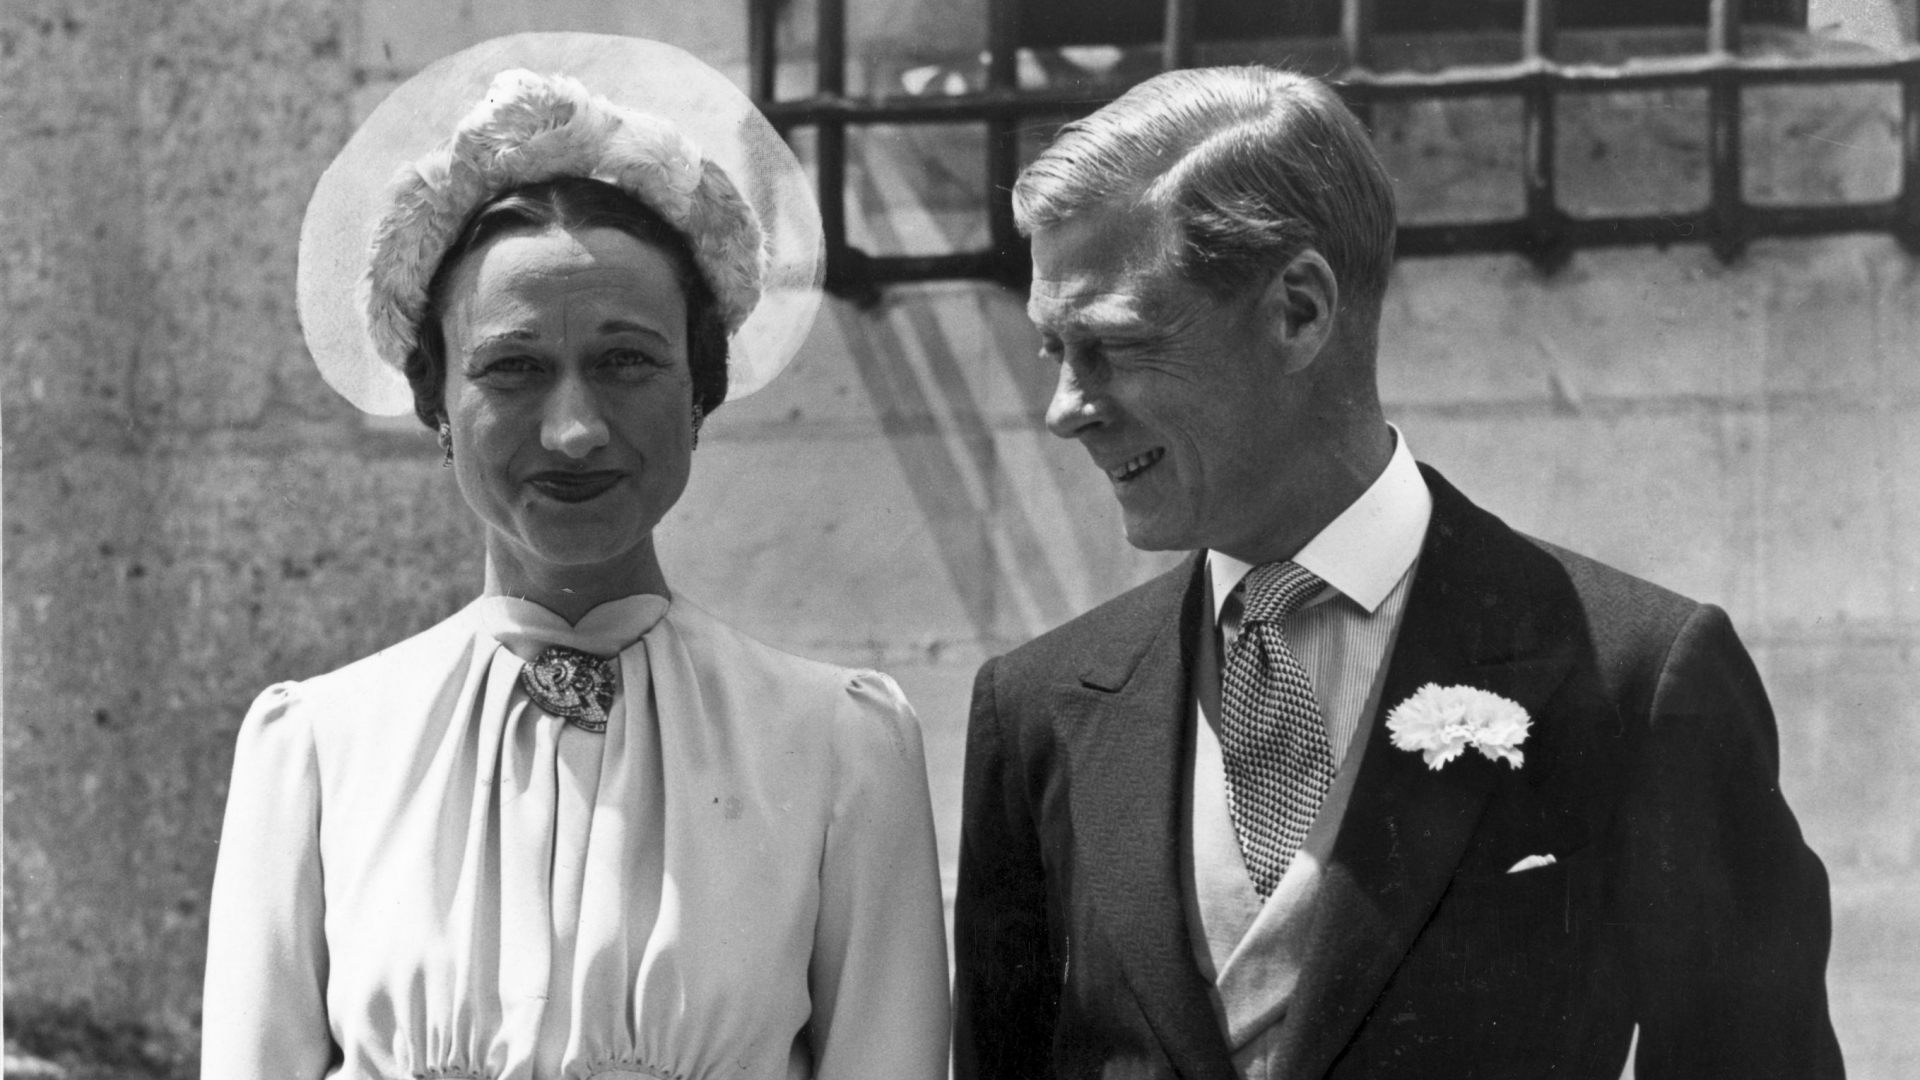 The Duke of Windsor with Wallis Simpson at the Chateau de Conde, France, on their wedding day. (Credit: Hulton Archive/Getty Images)